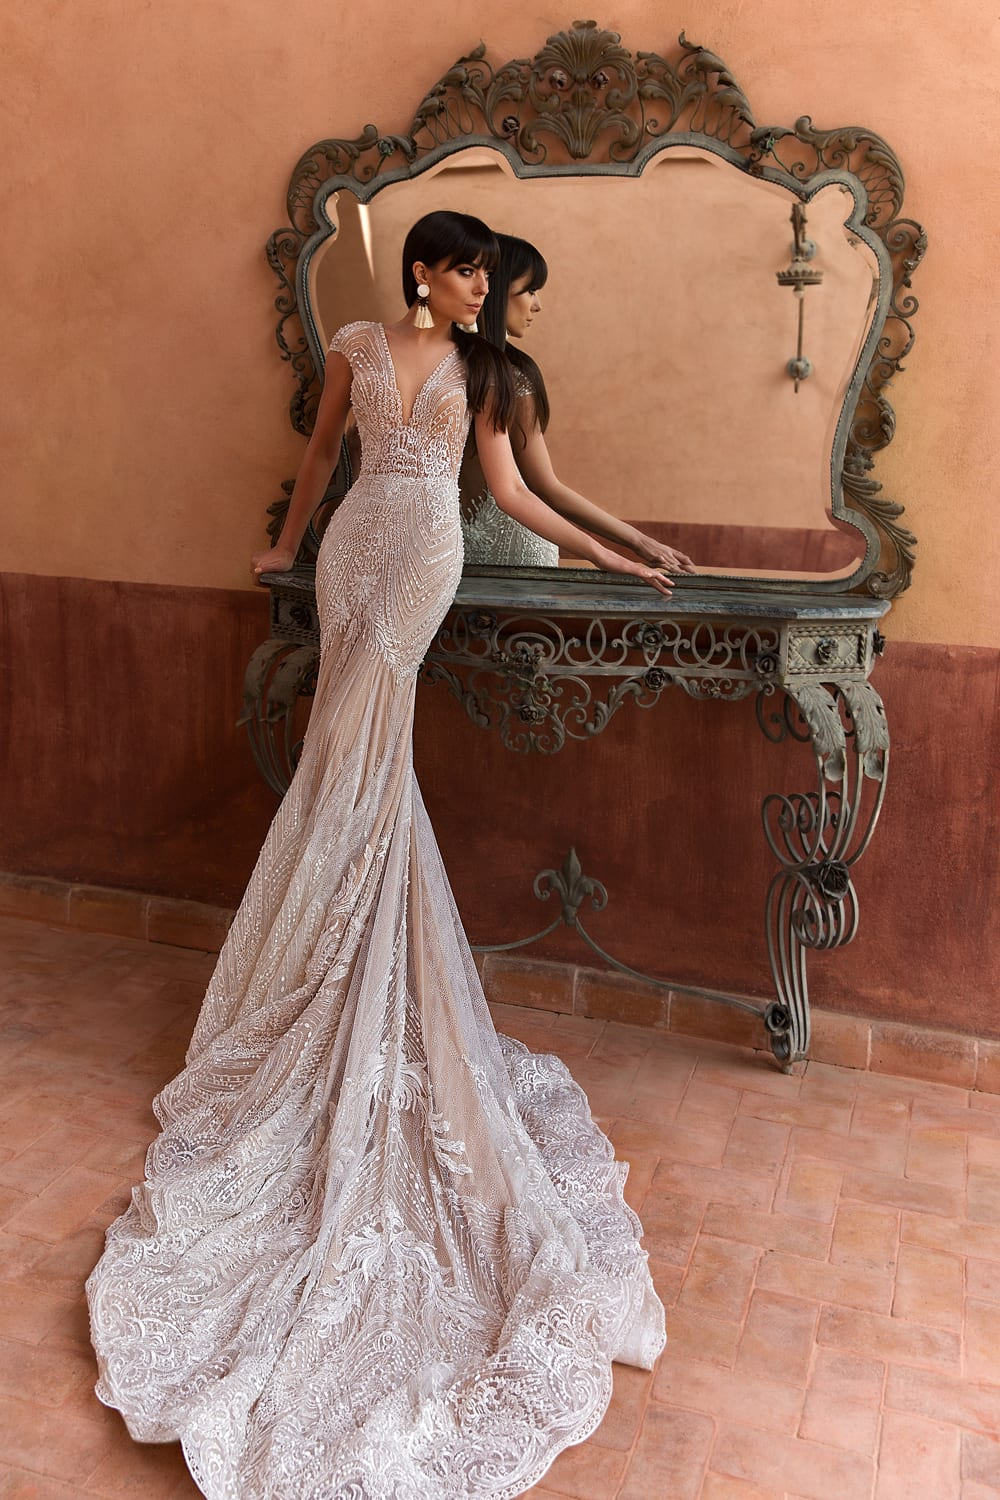 Captivating Wedding Outfit Gown For Women